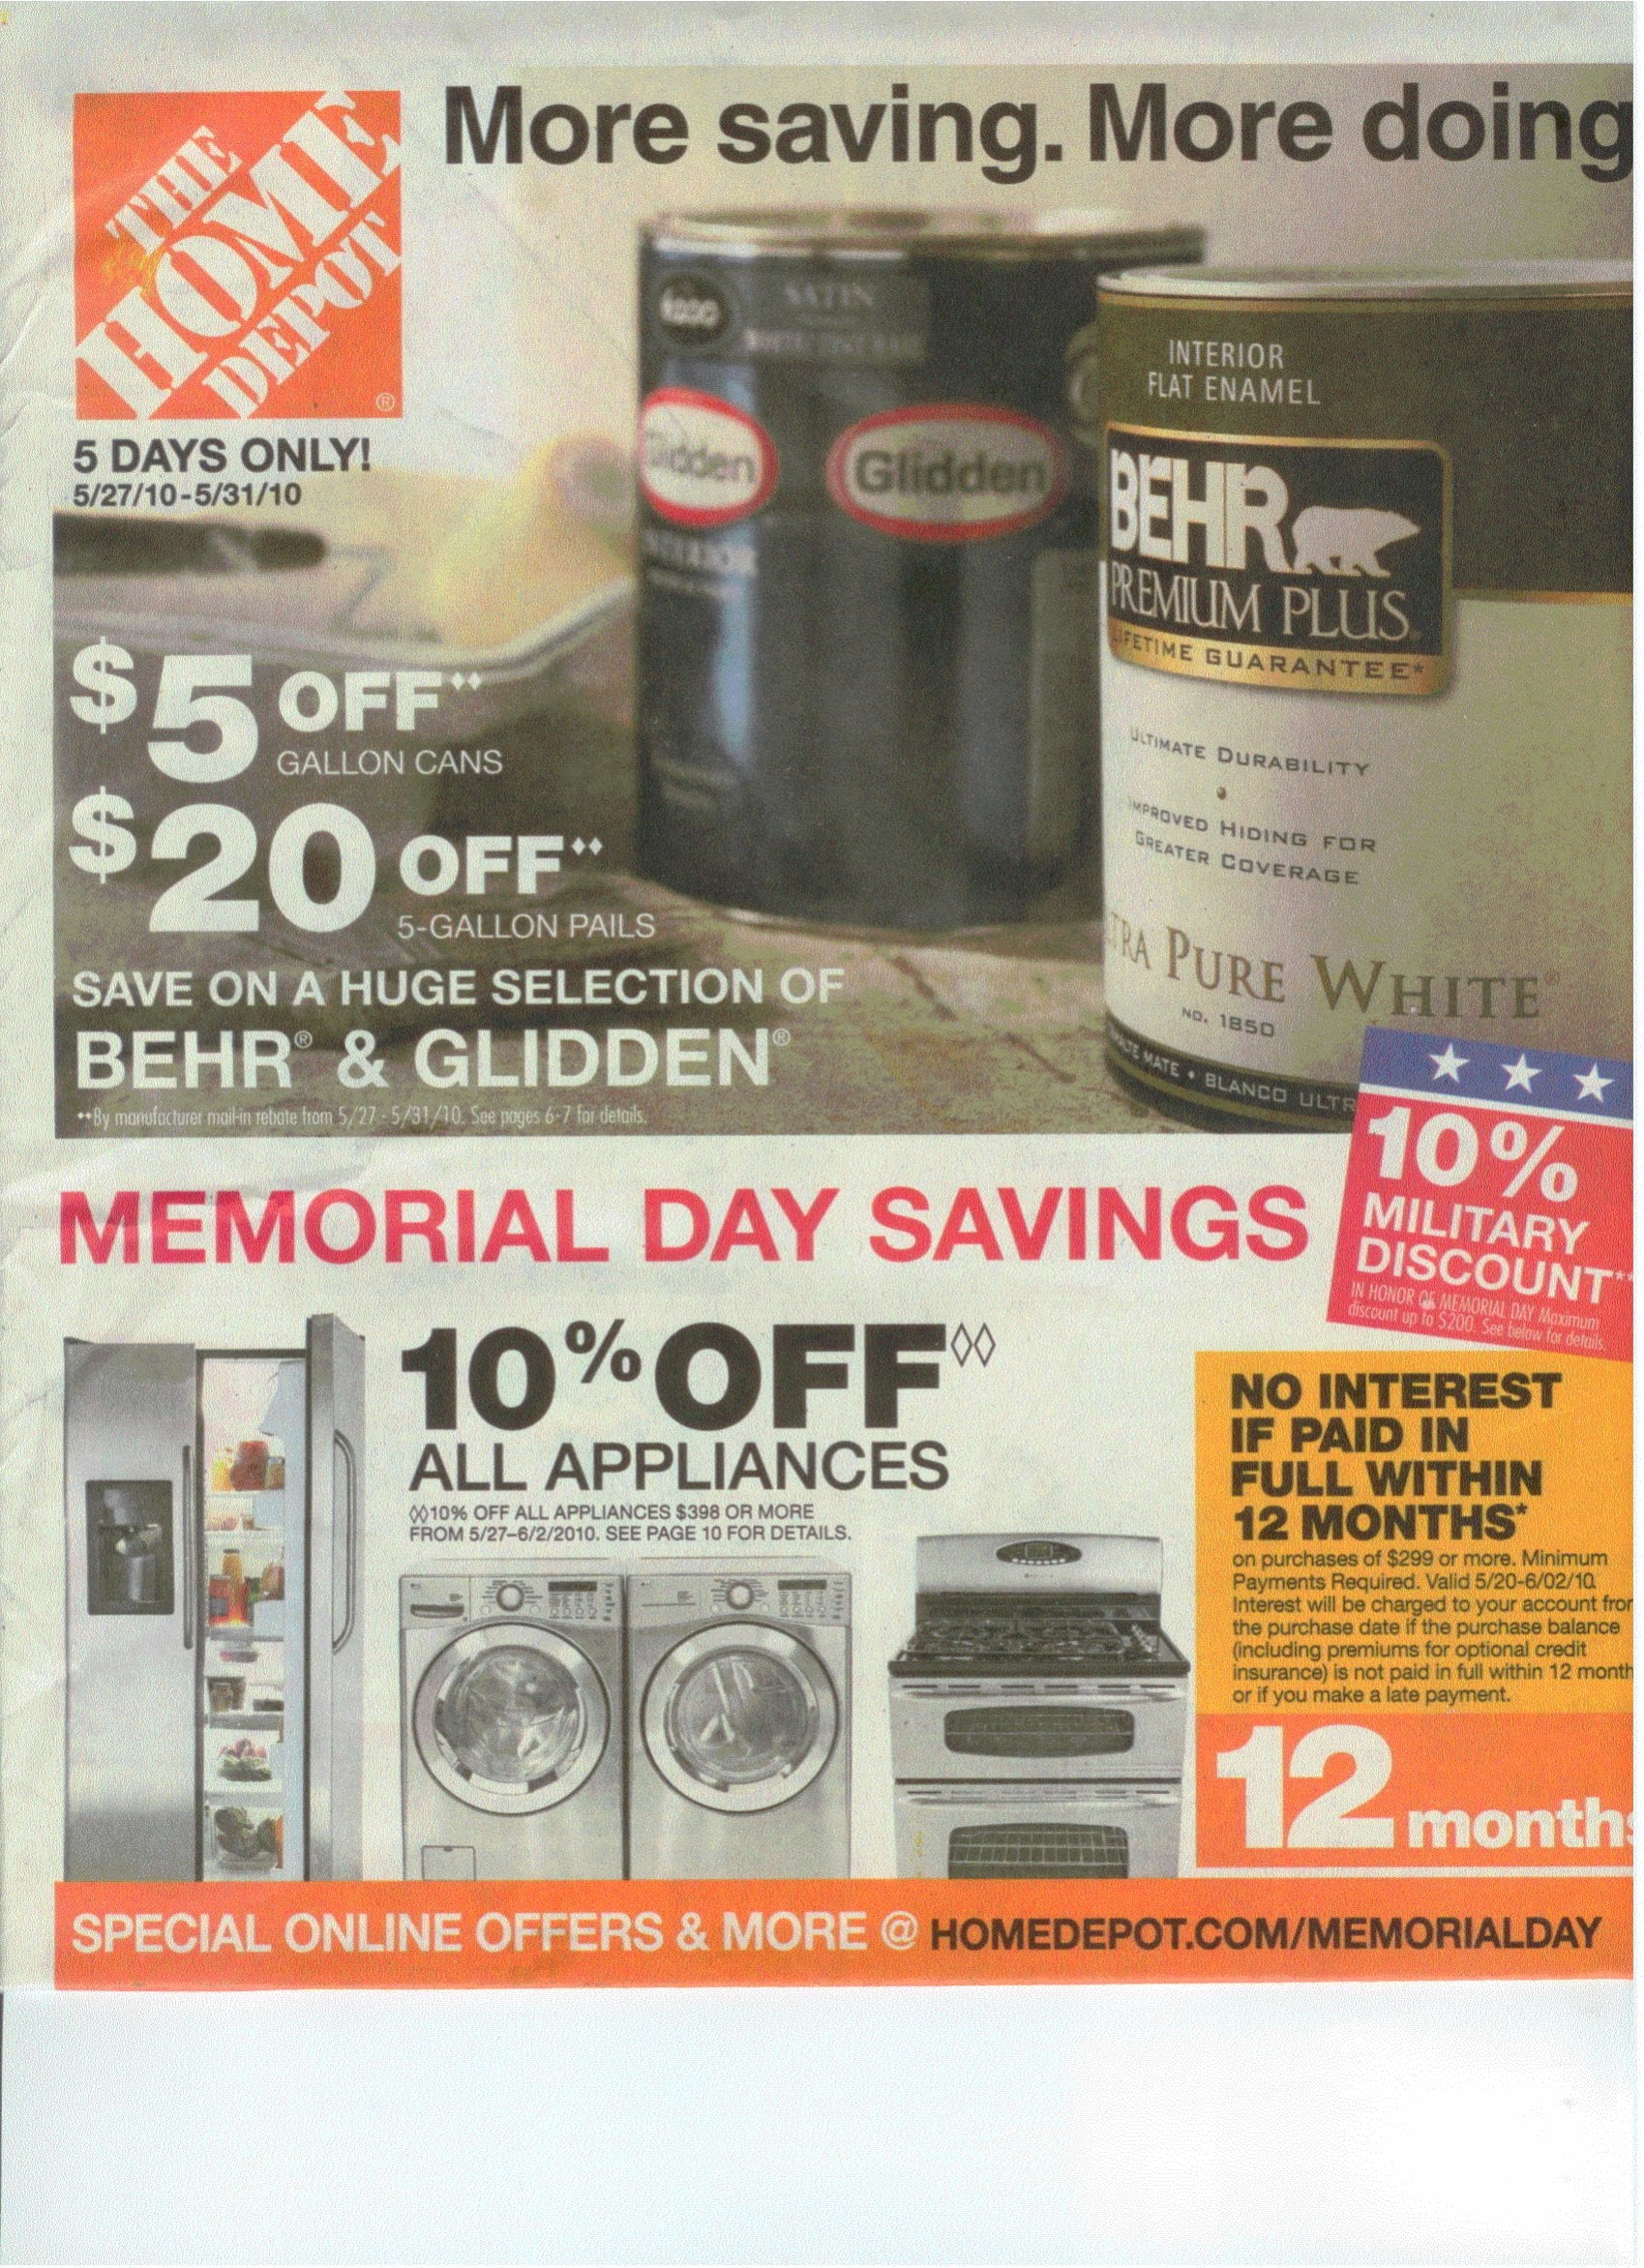 Home depot memorial day ad is out for Home depot memorial day paint rebate